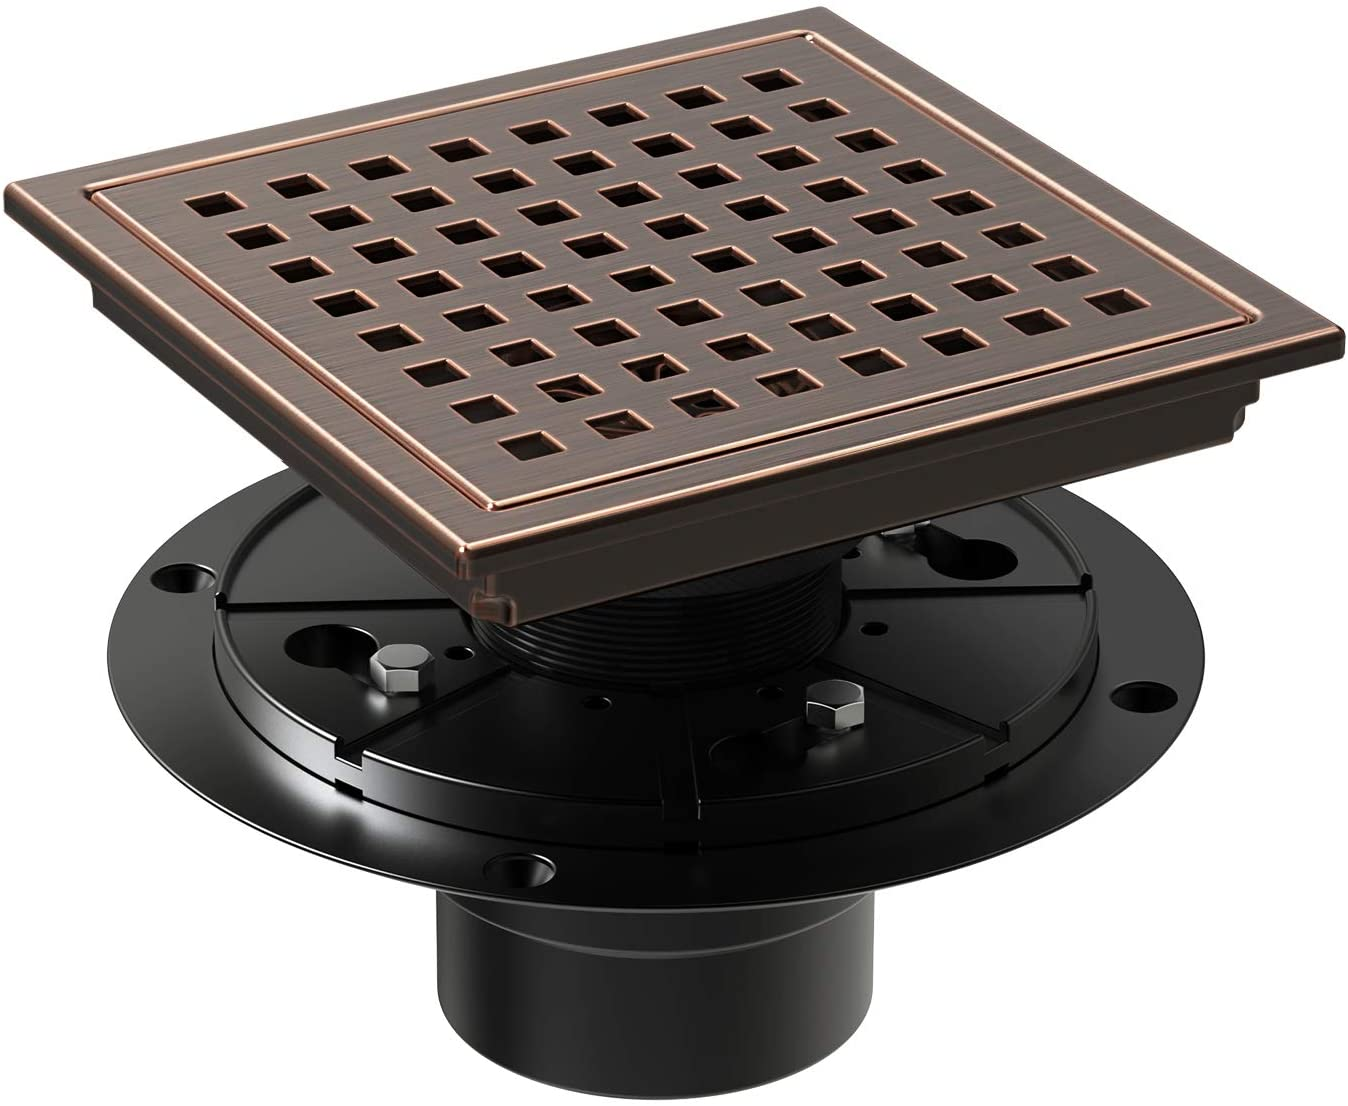 WEBANG 6 Inch Square Shower Floor Drain With Flange,Quadrato Pattern Grate Removable,Food-grade SUS 304 Stainless Steel,WATERMARK&CUPC Certified,Brushed Red Bronze Antique Copper